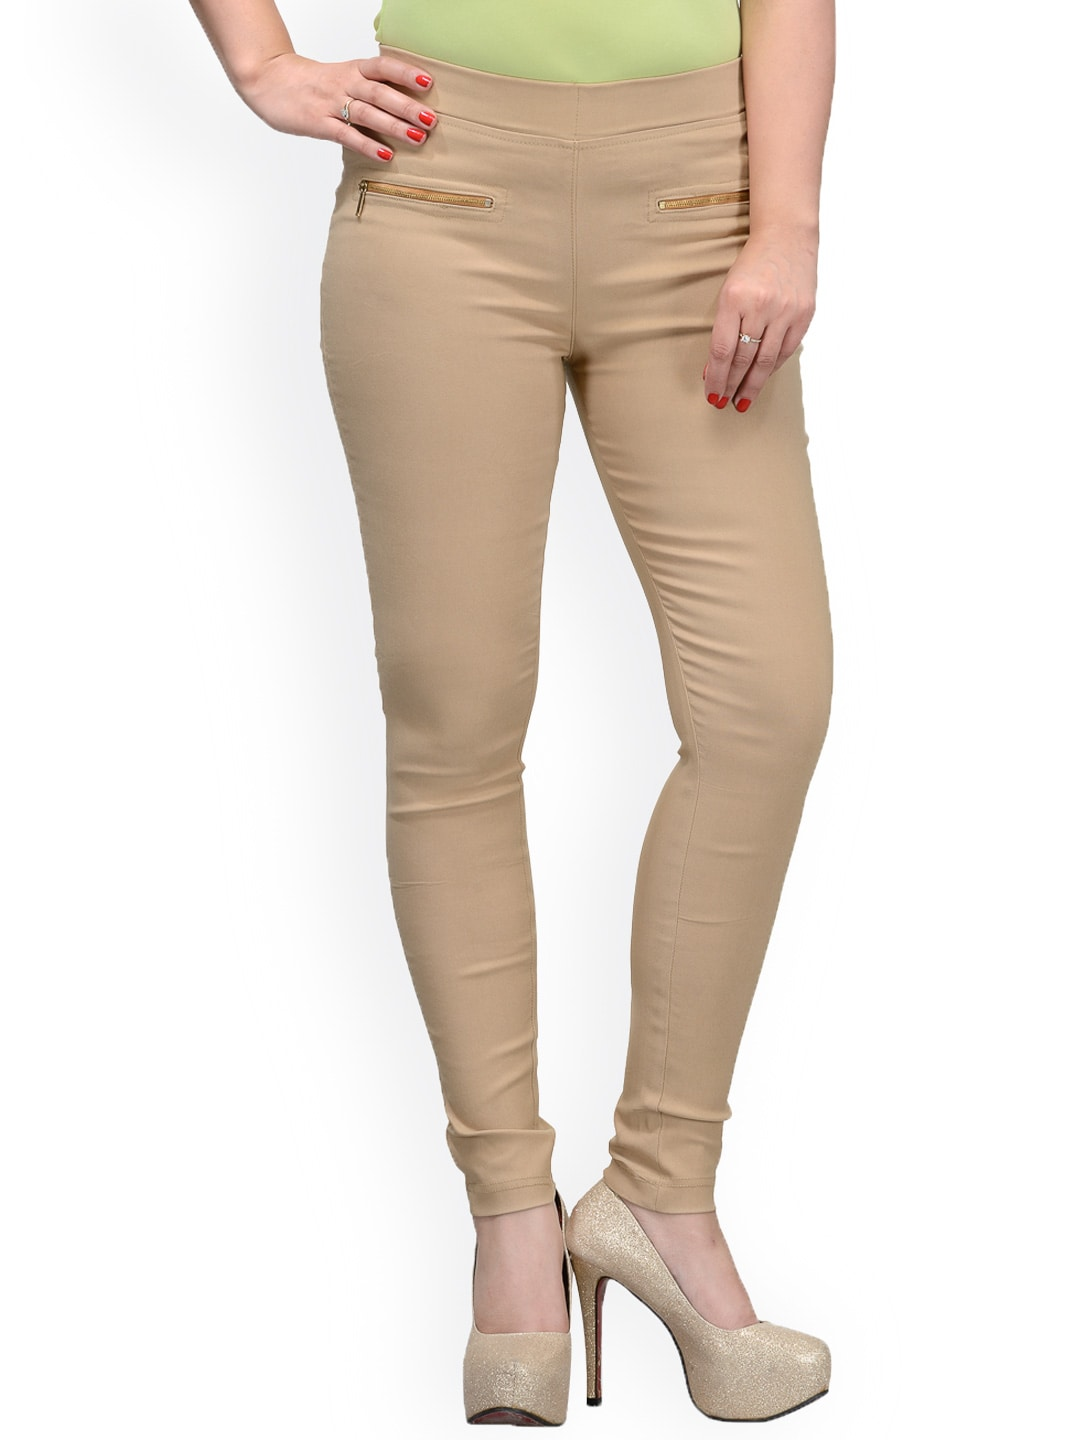 Tulsattva Nude-Coloured Slim Jeggings